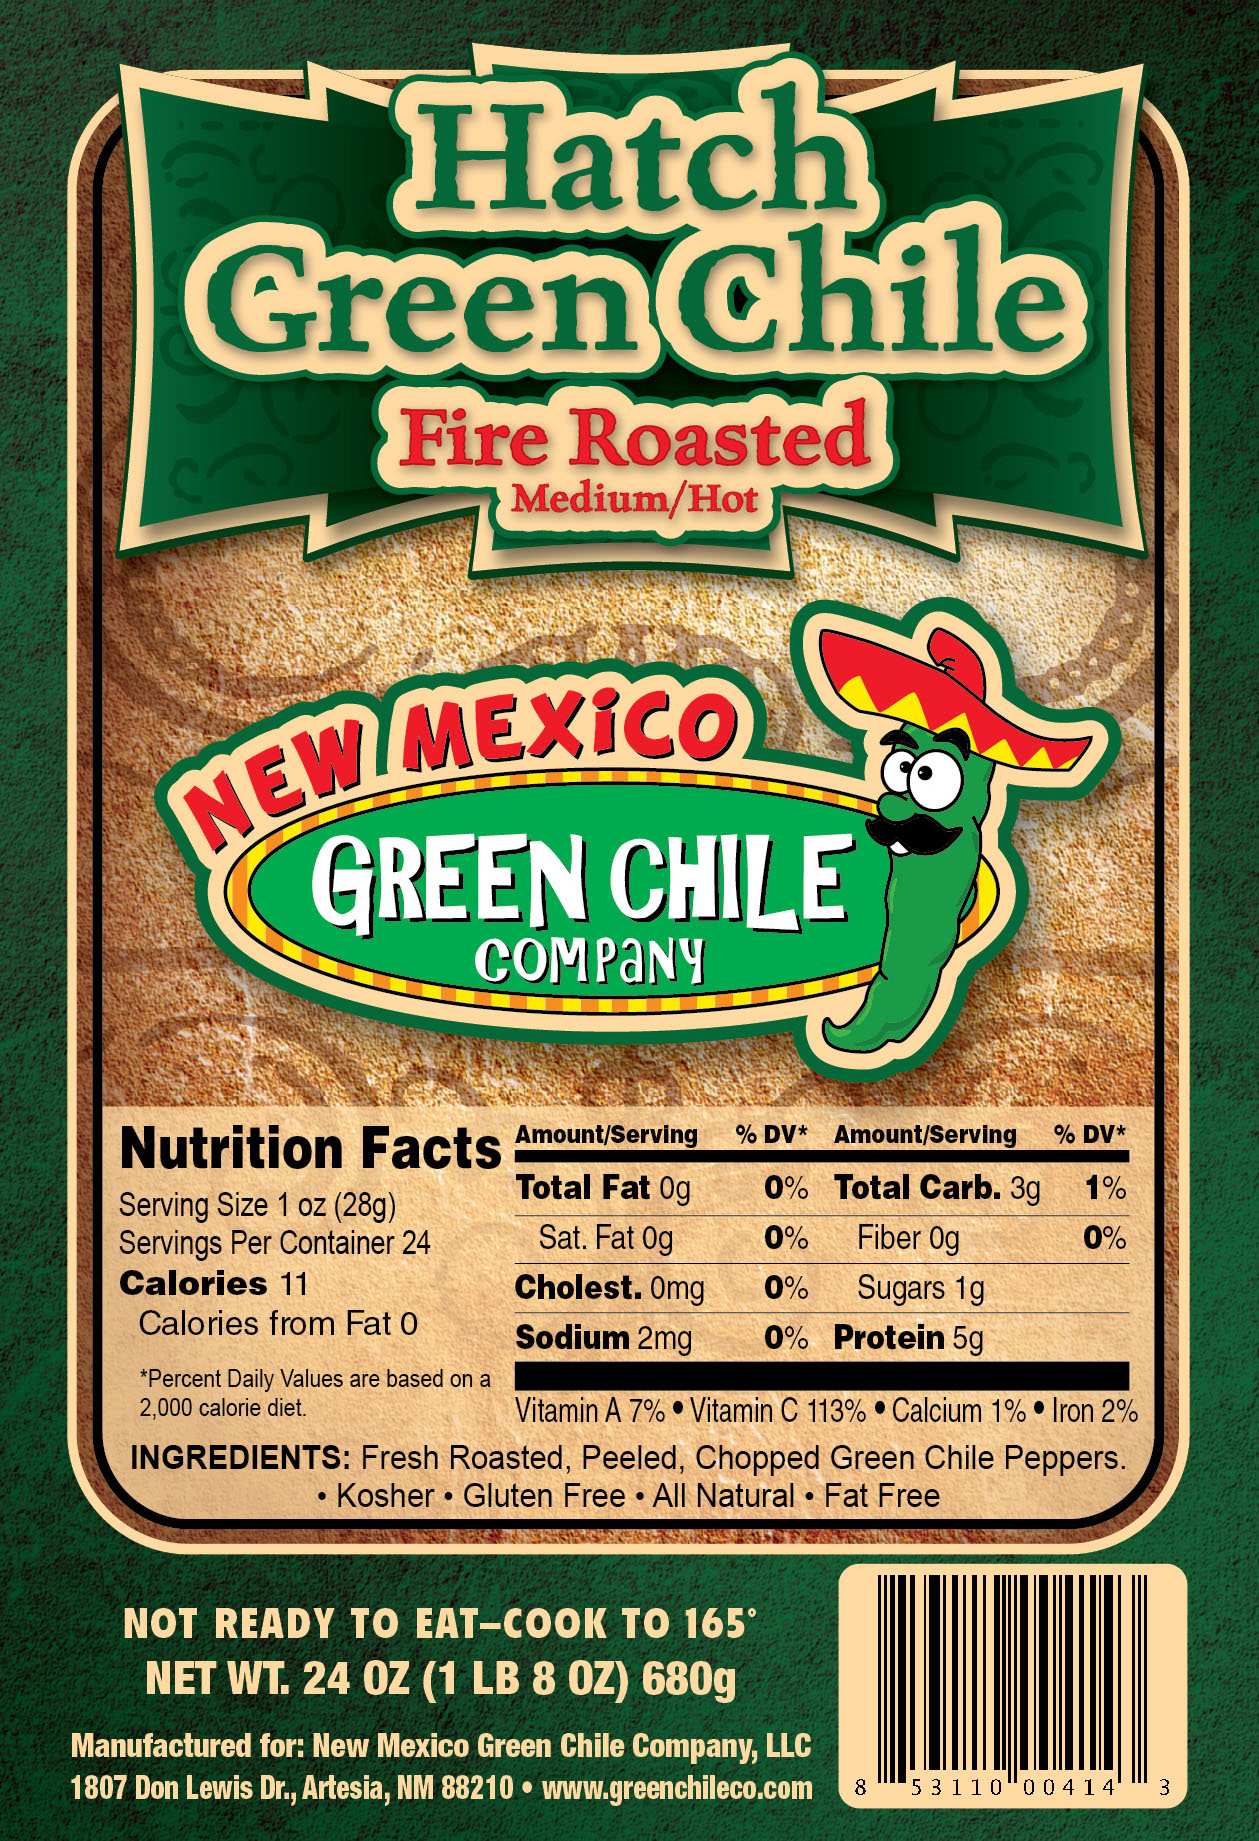 Hatch Green Chile Package